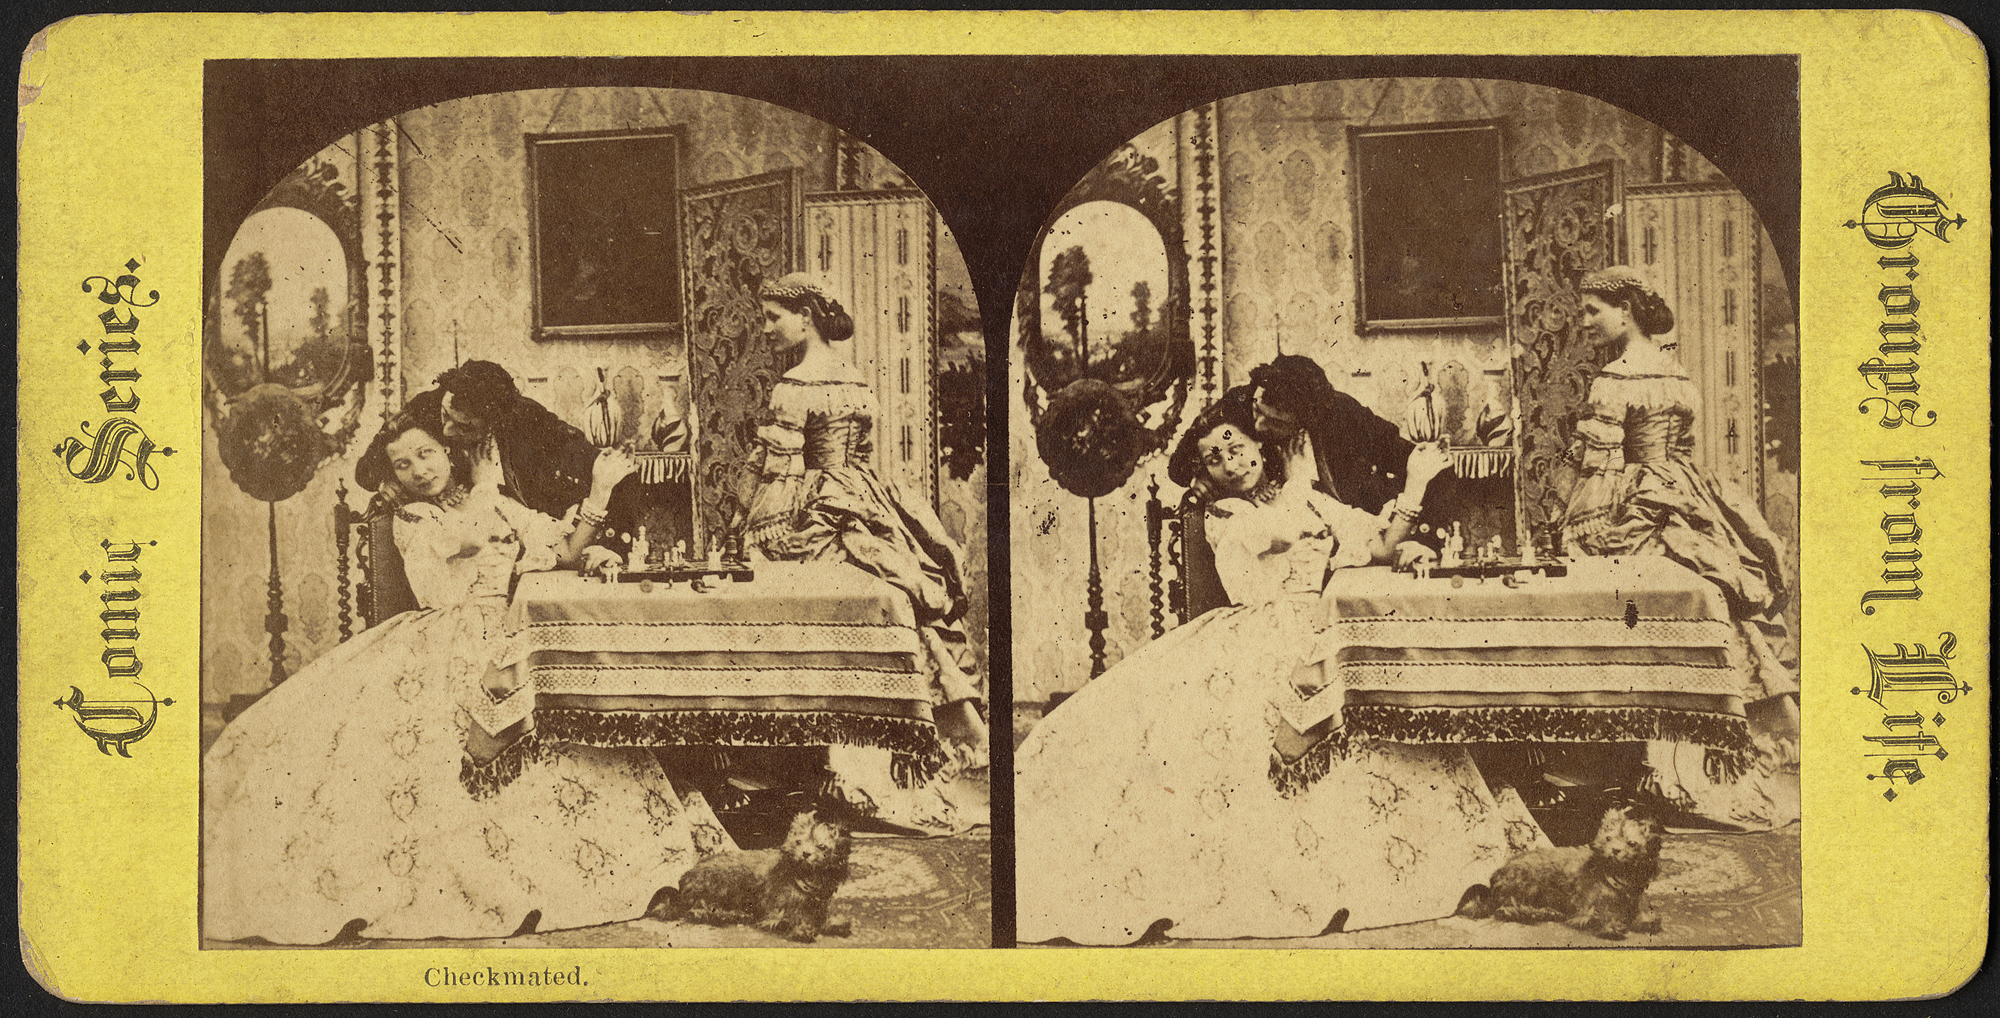 chess, checkmated, stereograph, boston public library, sepia